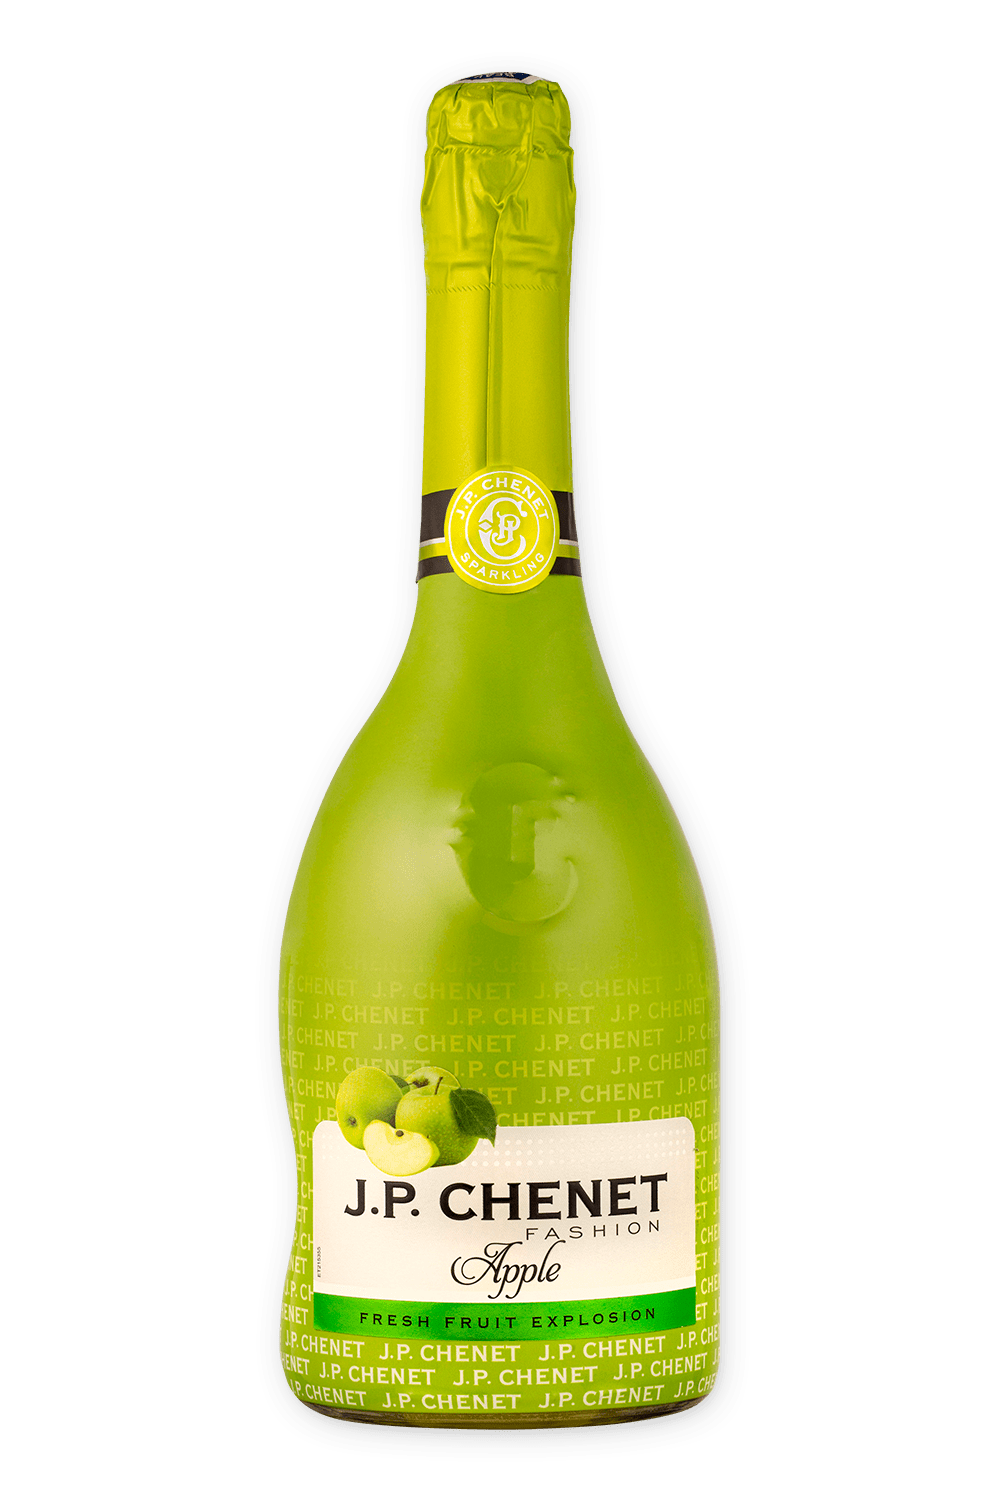 Jp.-Chenet-Fashion-Apple--Maca-Verde-